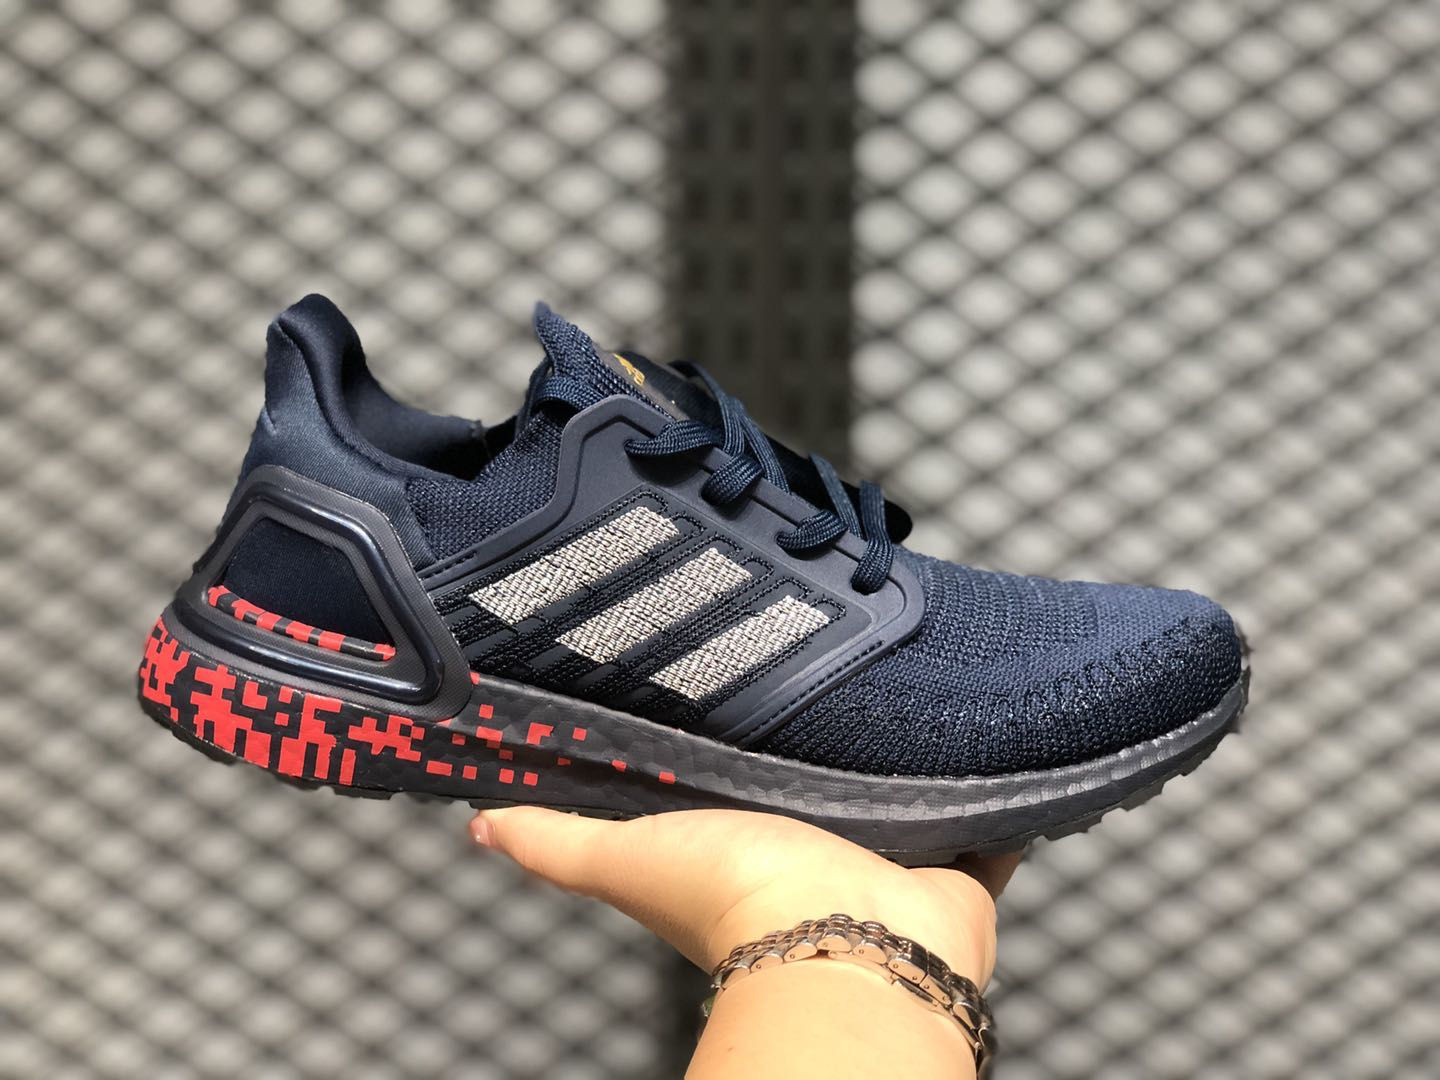 Adidas Ultra Boost 20 Collegiate Navy/Signal Coral/Gold Metallic FY3451